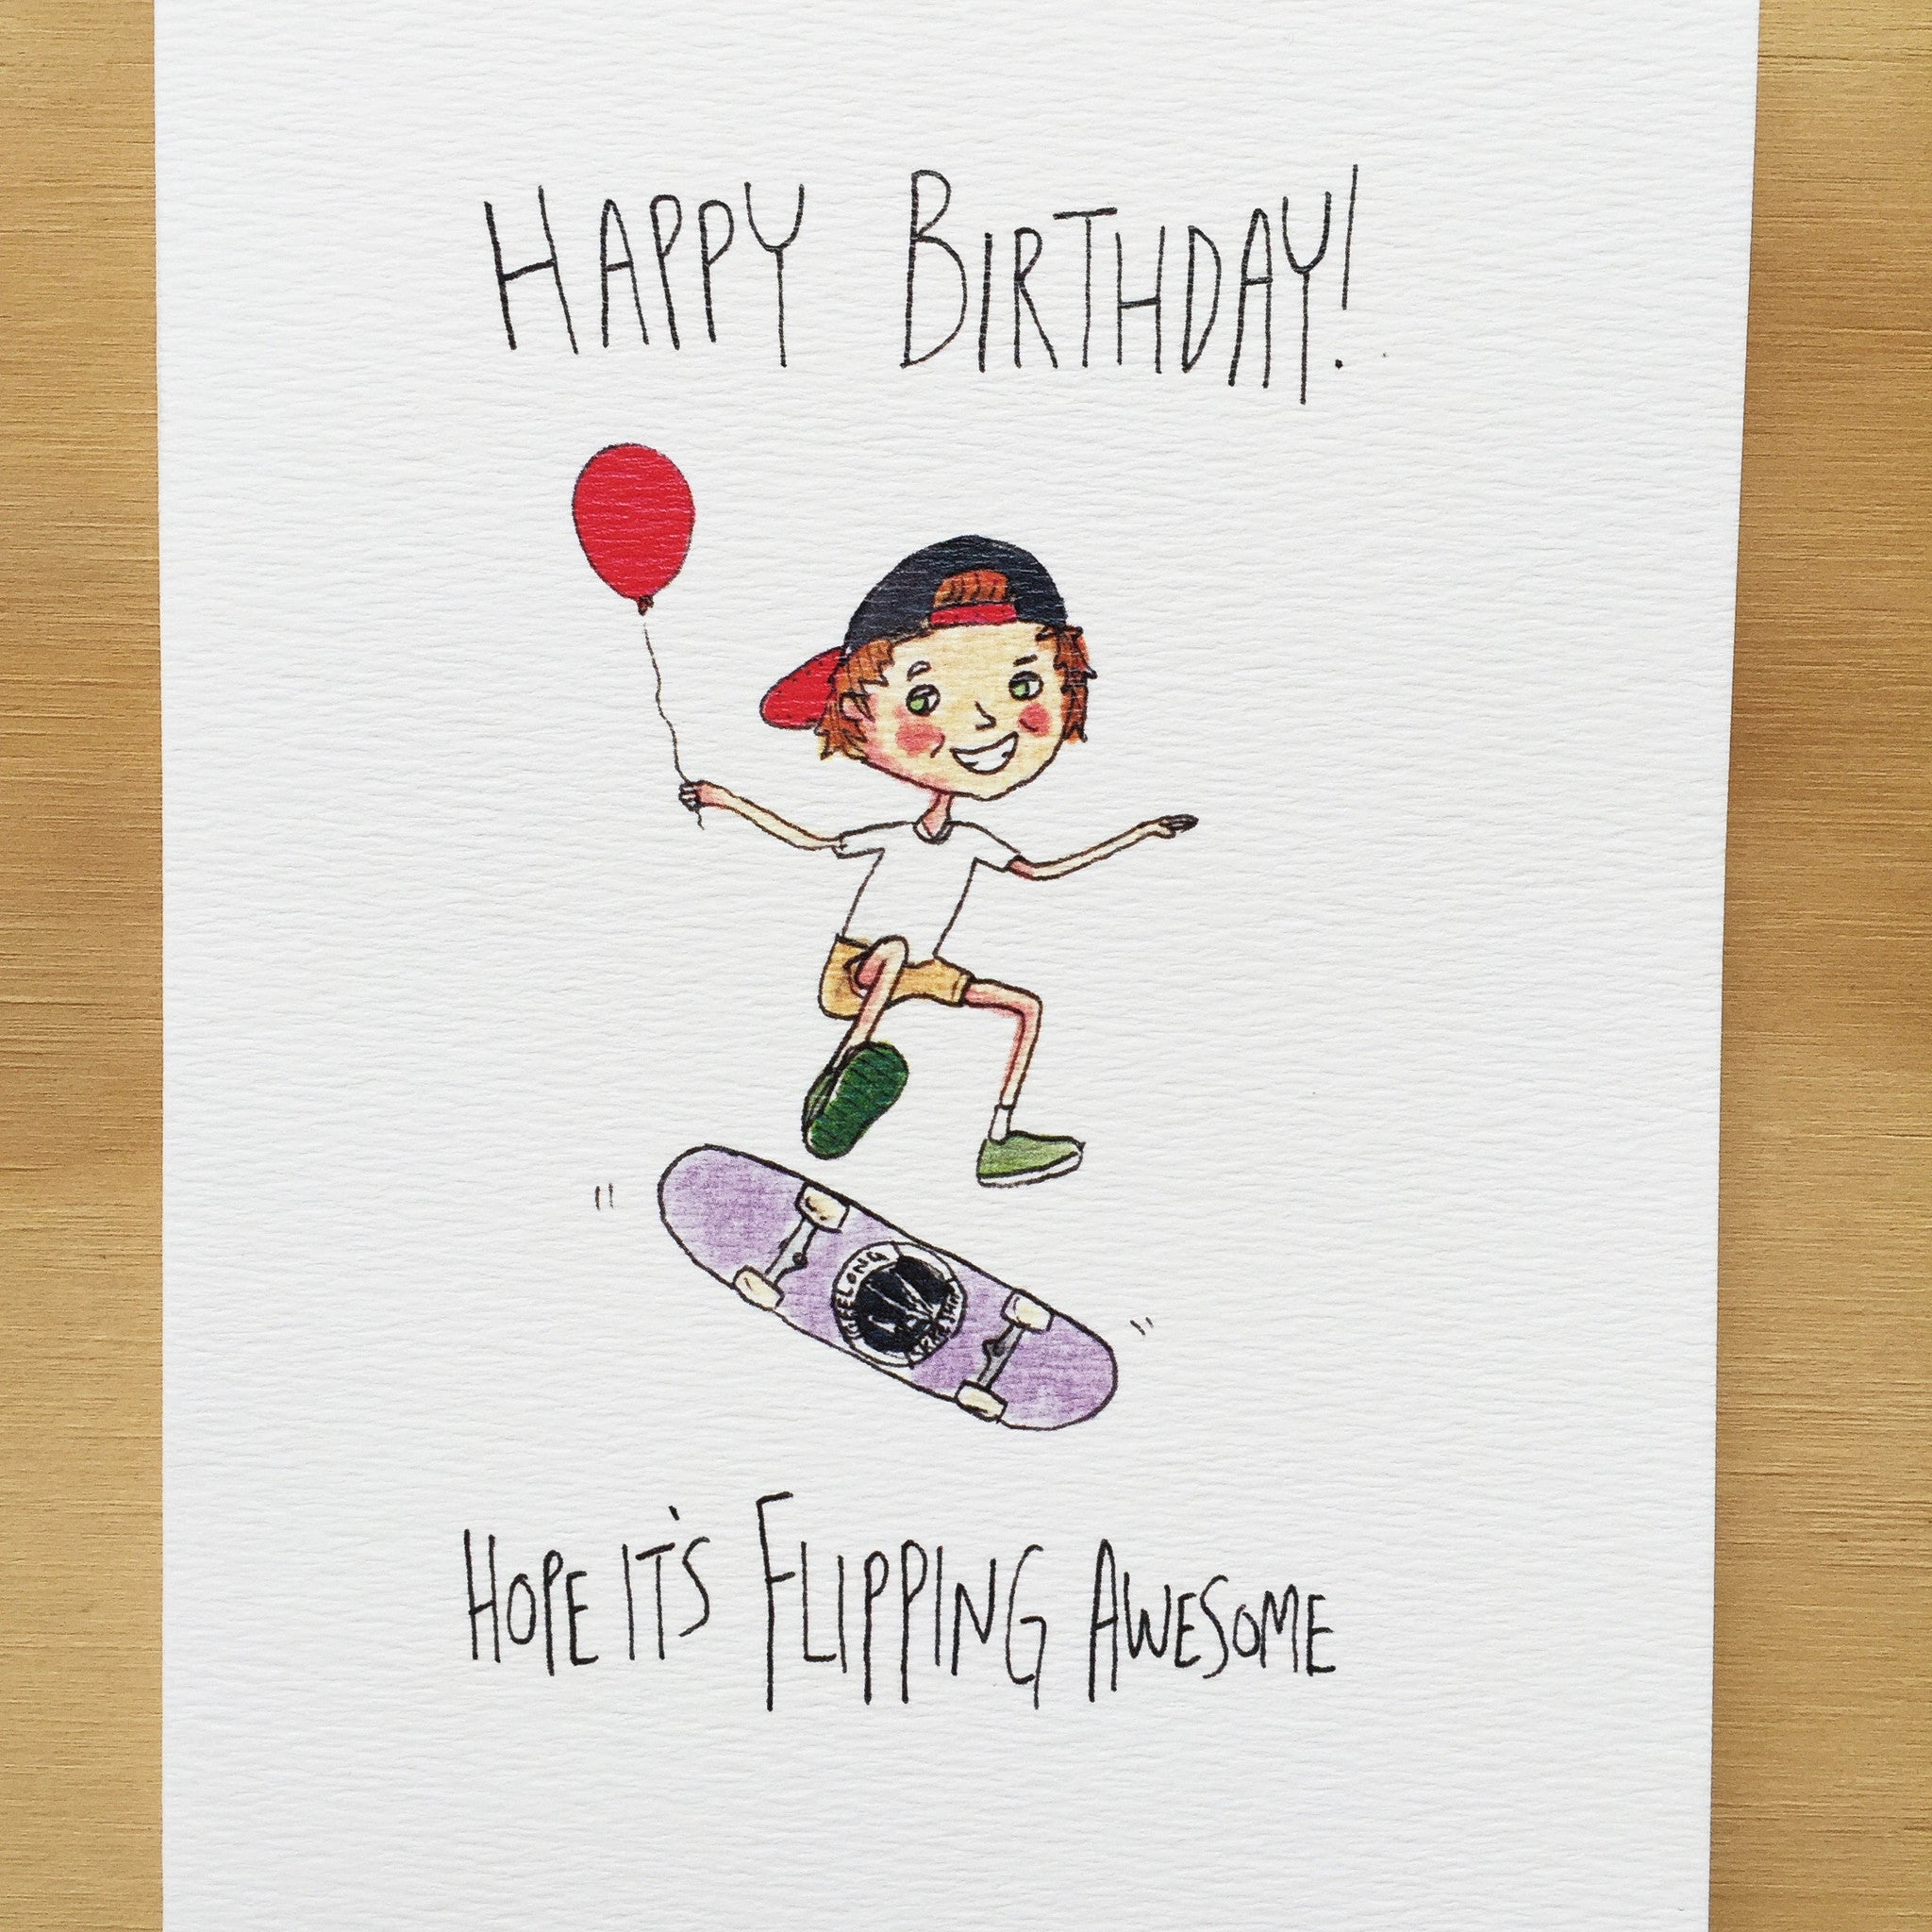 Happy Birthday, Hope it's Flipping Awesome - Well Drawn